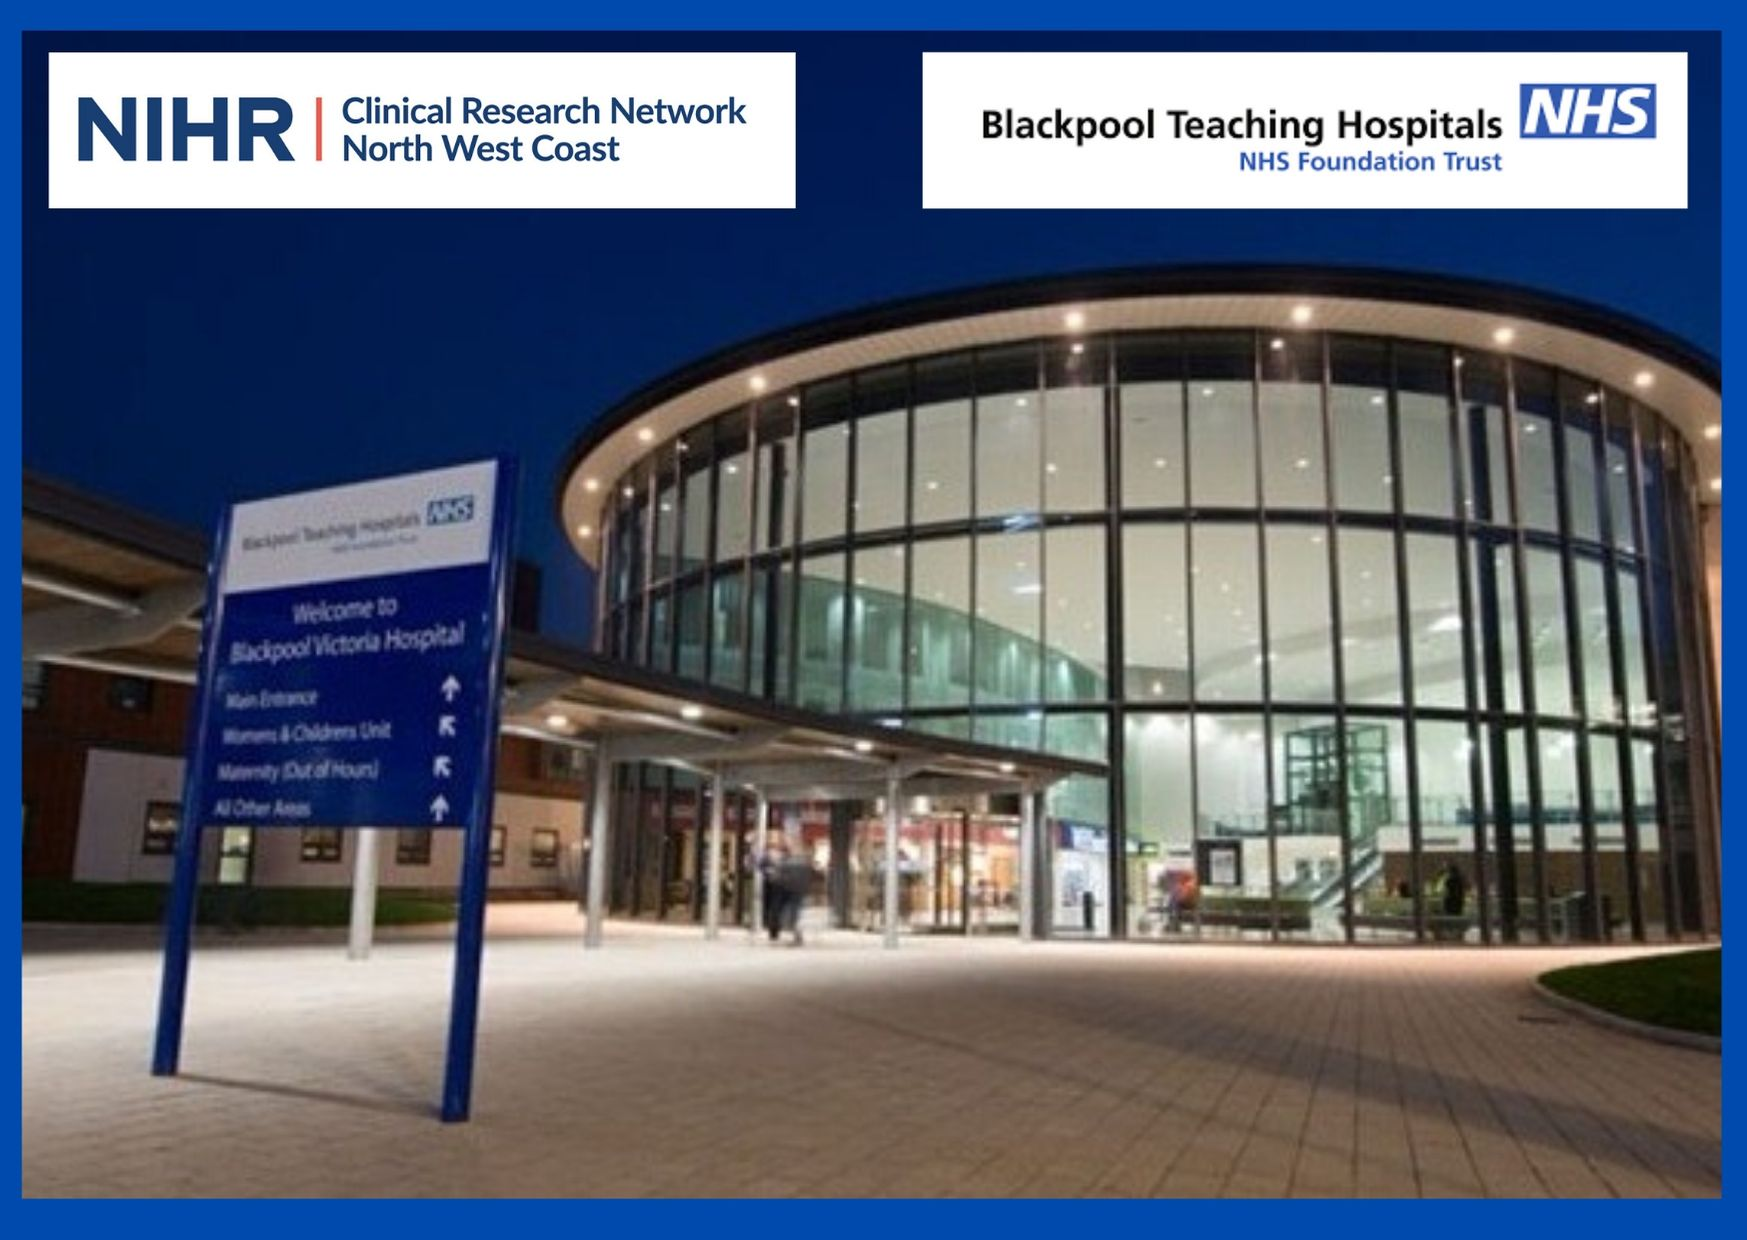 Blackpool Teaching Hospitals NHS Foundation Trust to receive funding from the Department of Health and Social Care for a Patient Recruitment Centre